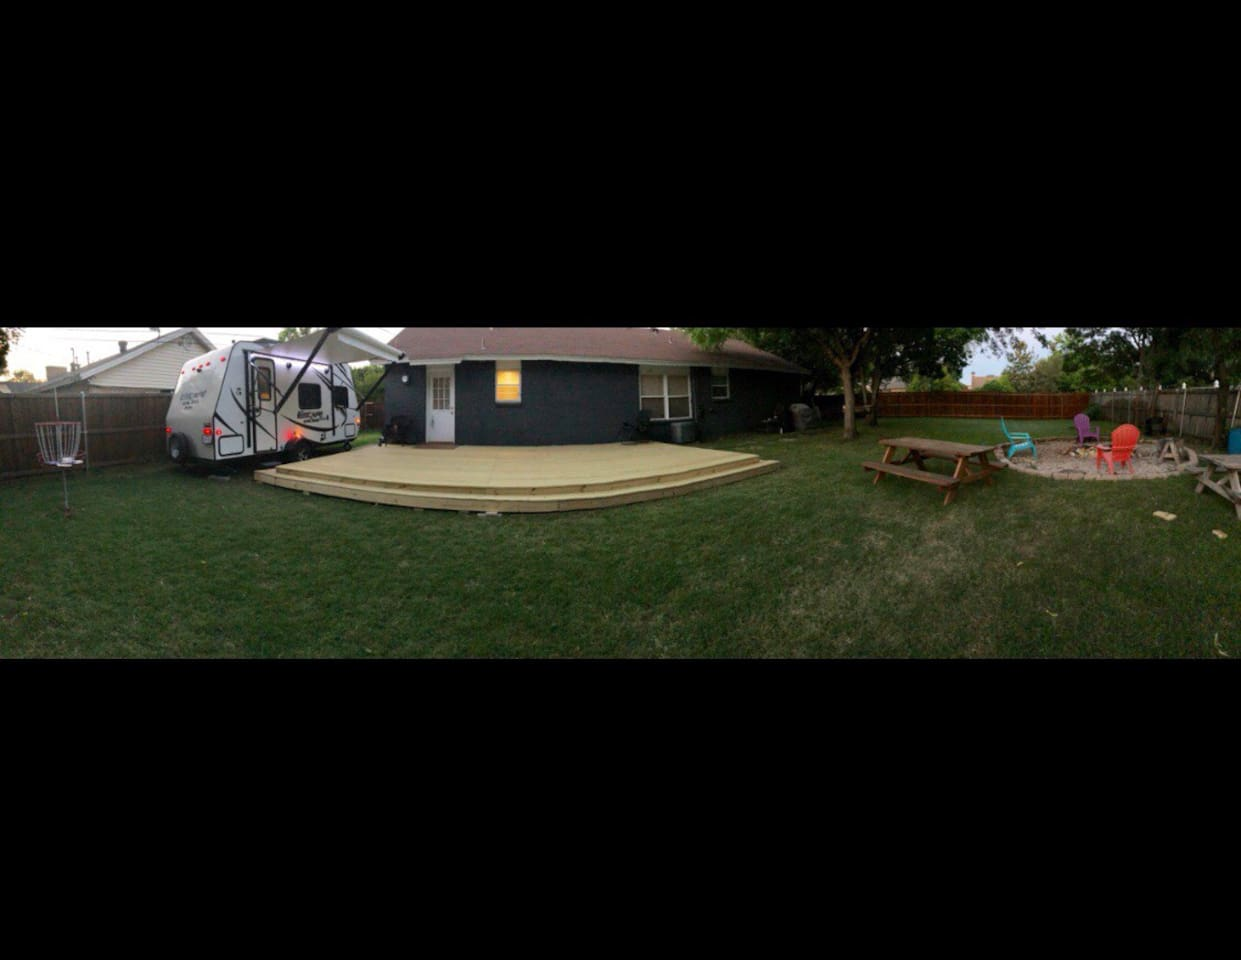 Backyard: disc golf, fire pit, camper with a deck connected and a hot tub tucked away in the corner